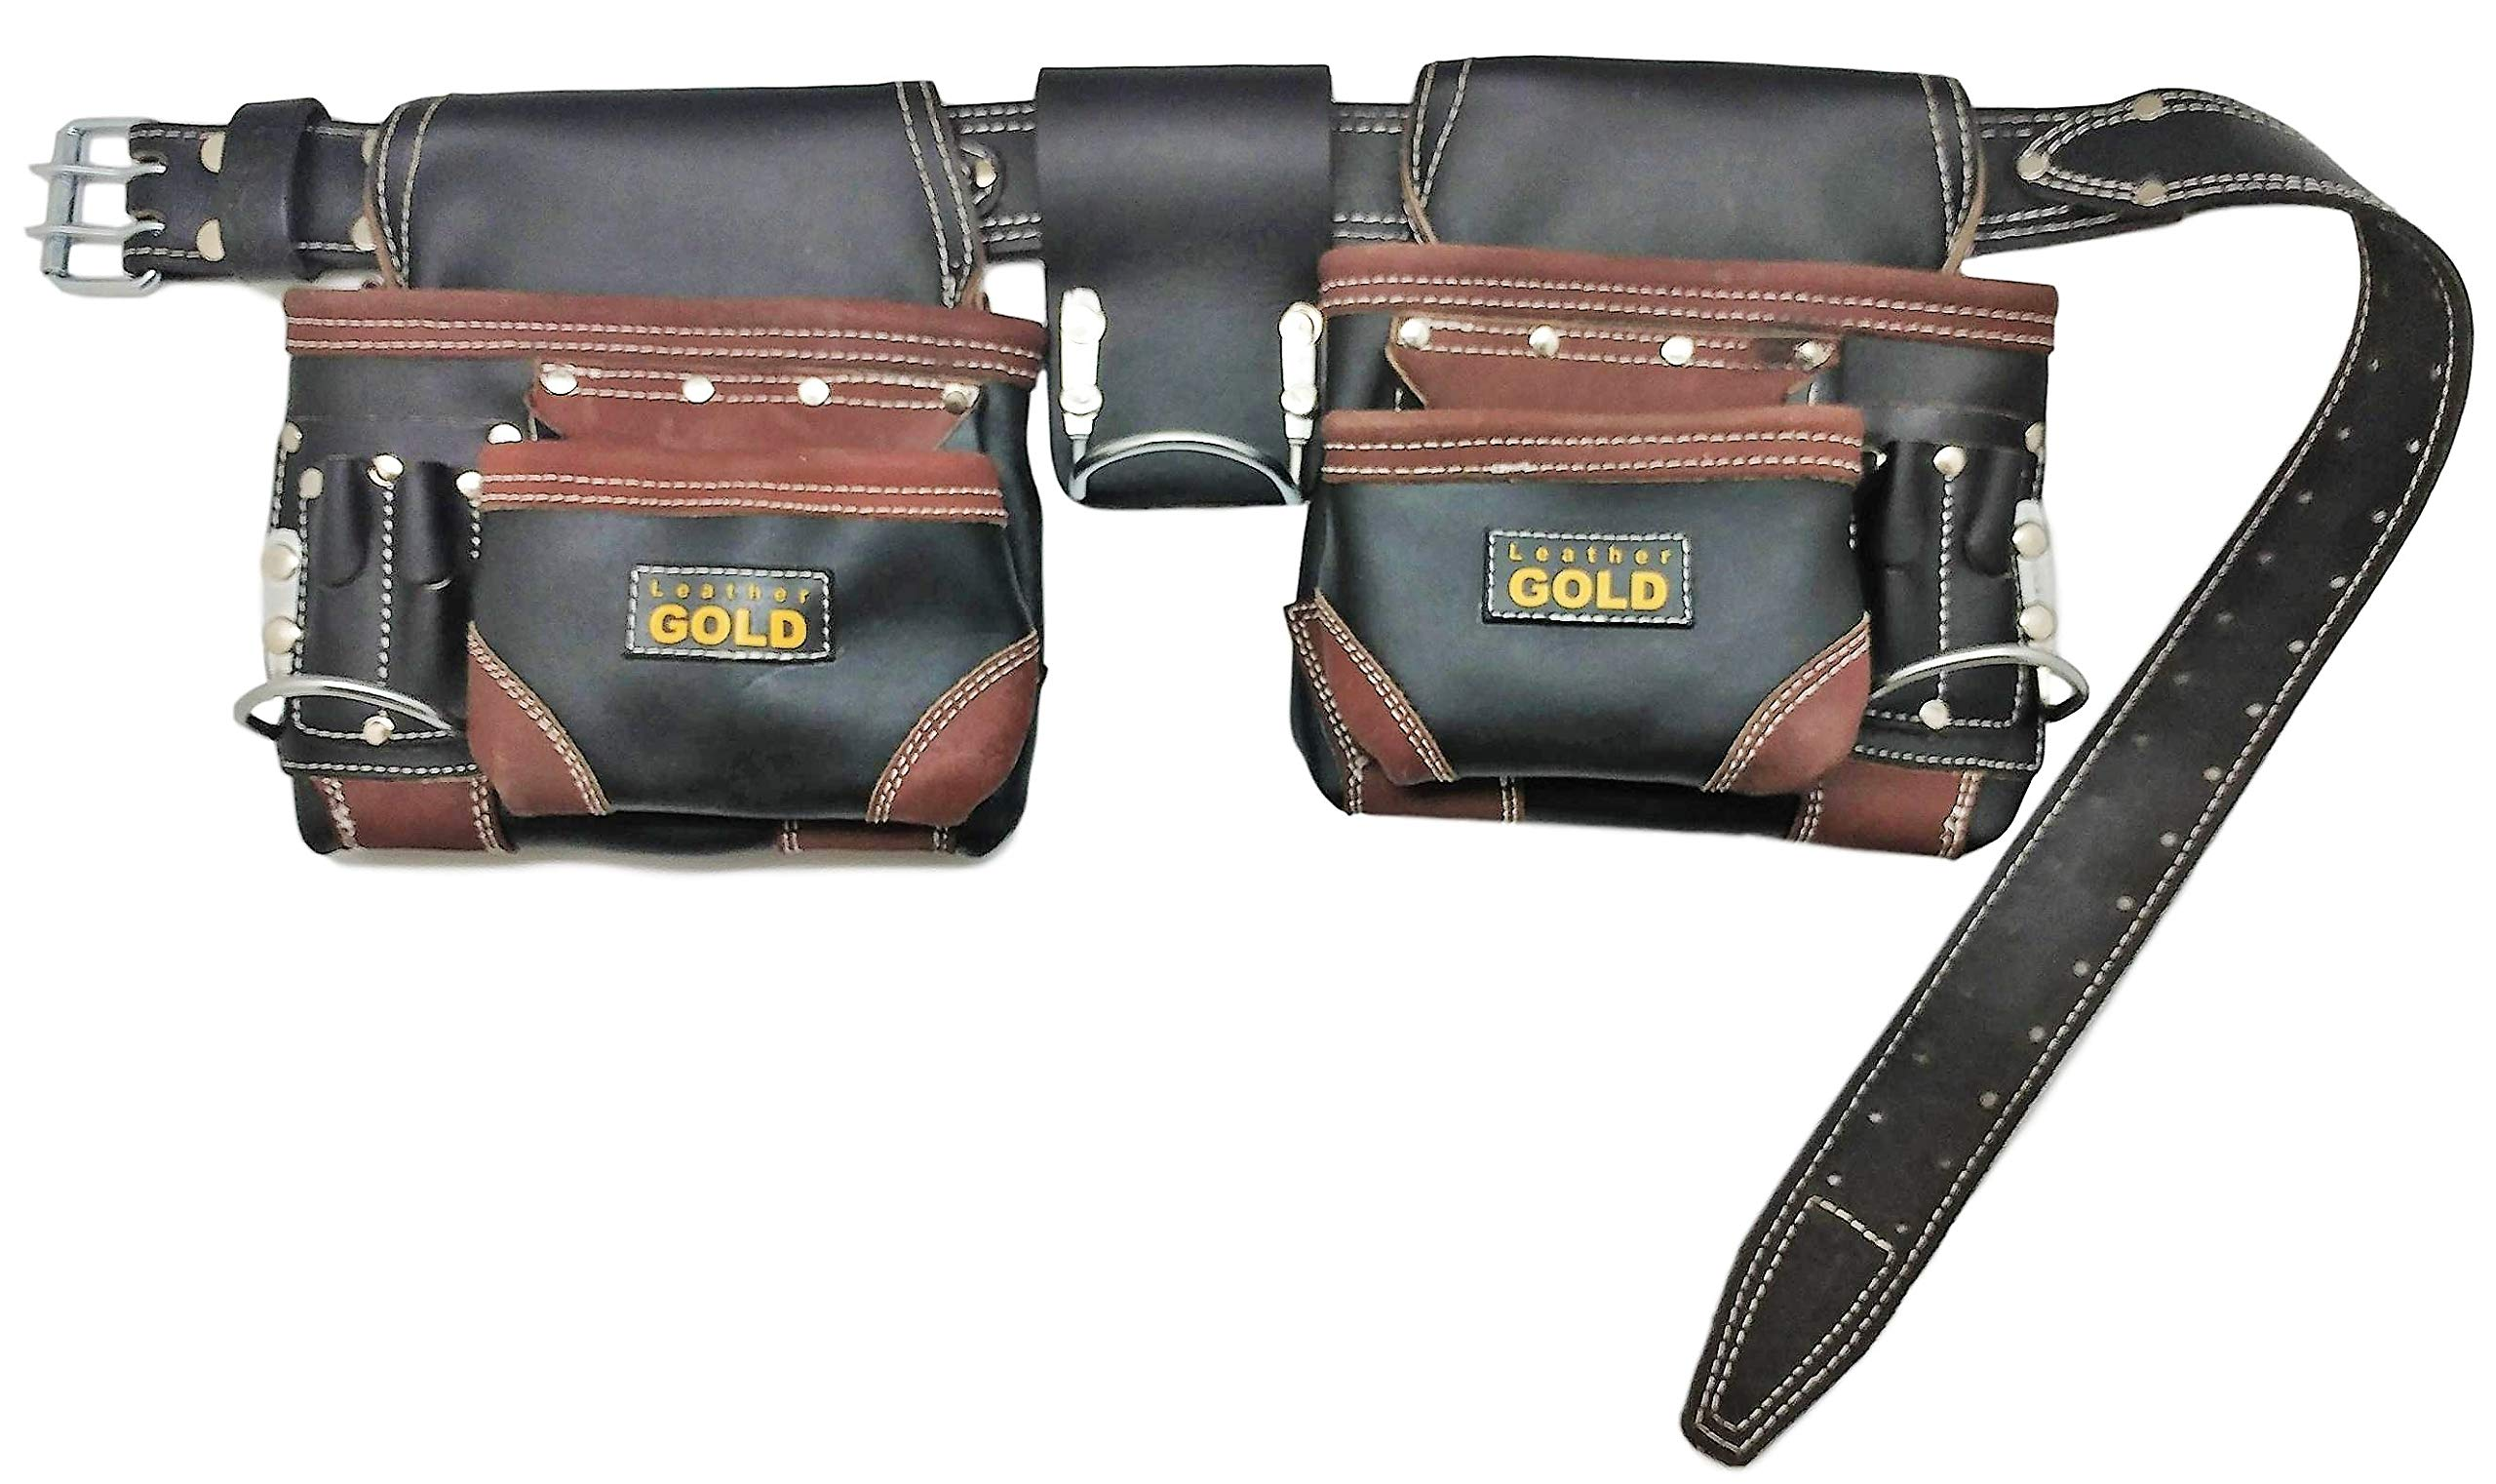 Leather Gold Genuine Leather Framer's Rig Tool Belt 3450 Black, with 10 Sliding Pouches and 3 Hammer Holders | Built Tough for Construction Work | Comfortable All Day | Commercial Grade Quality by Leather Gold